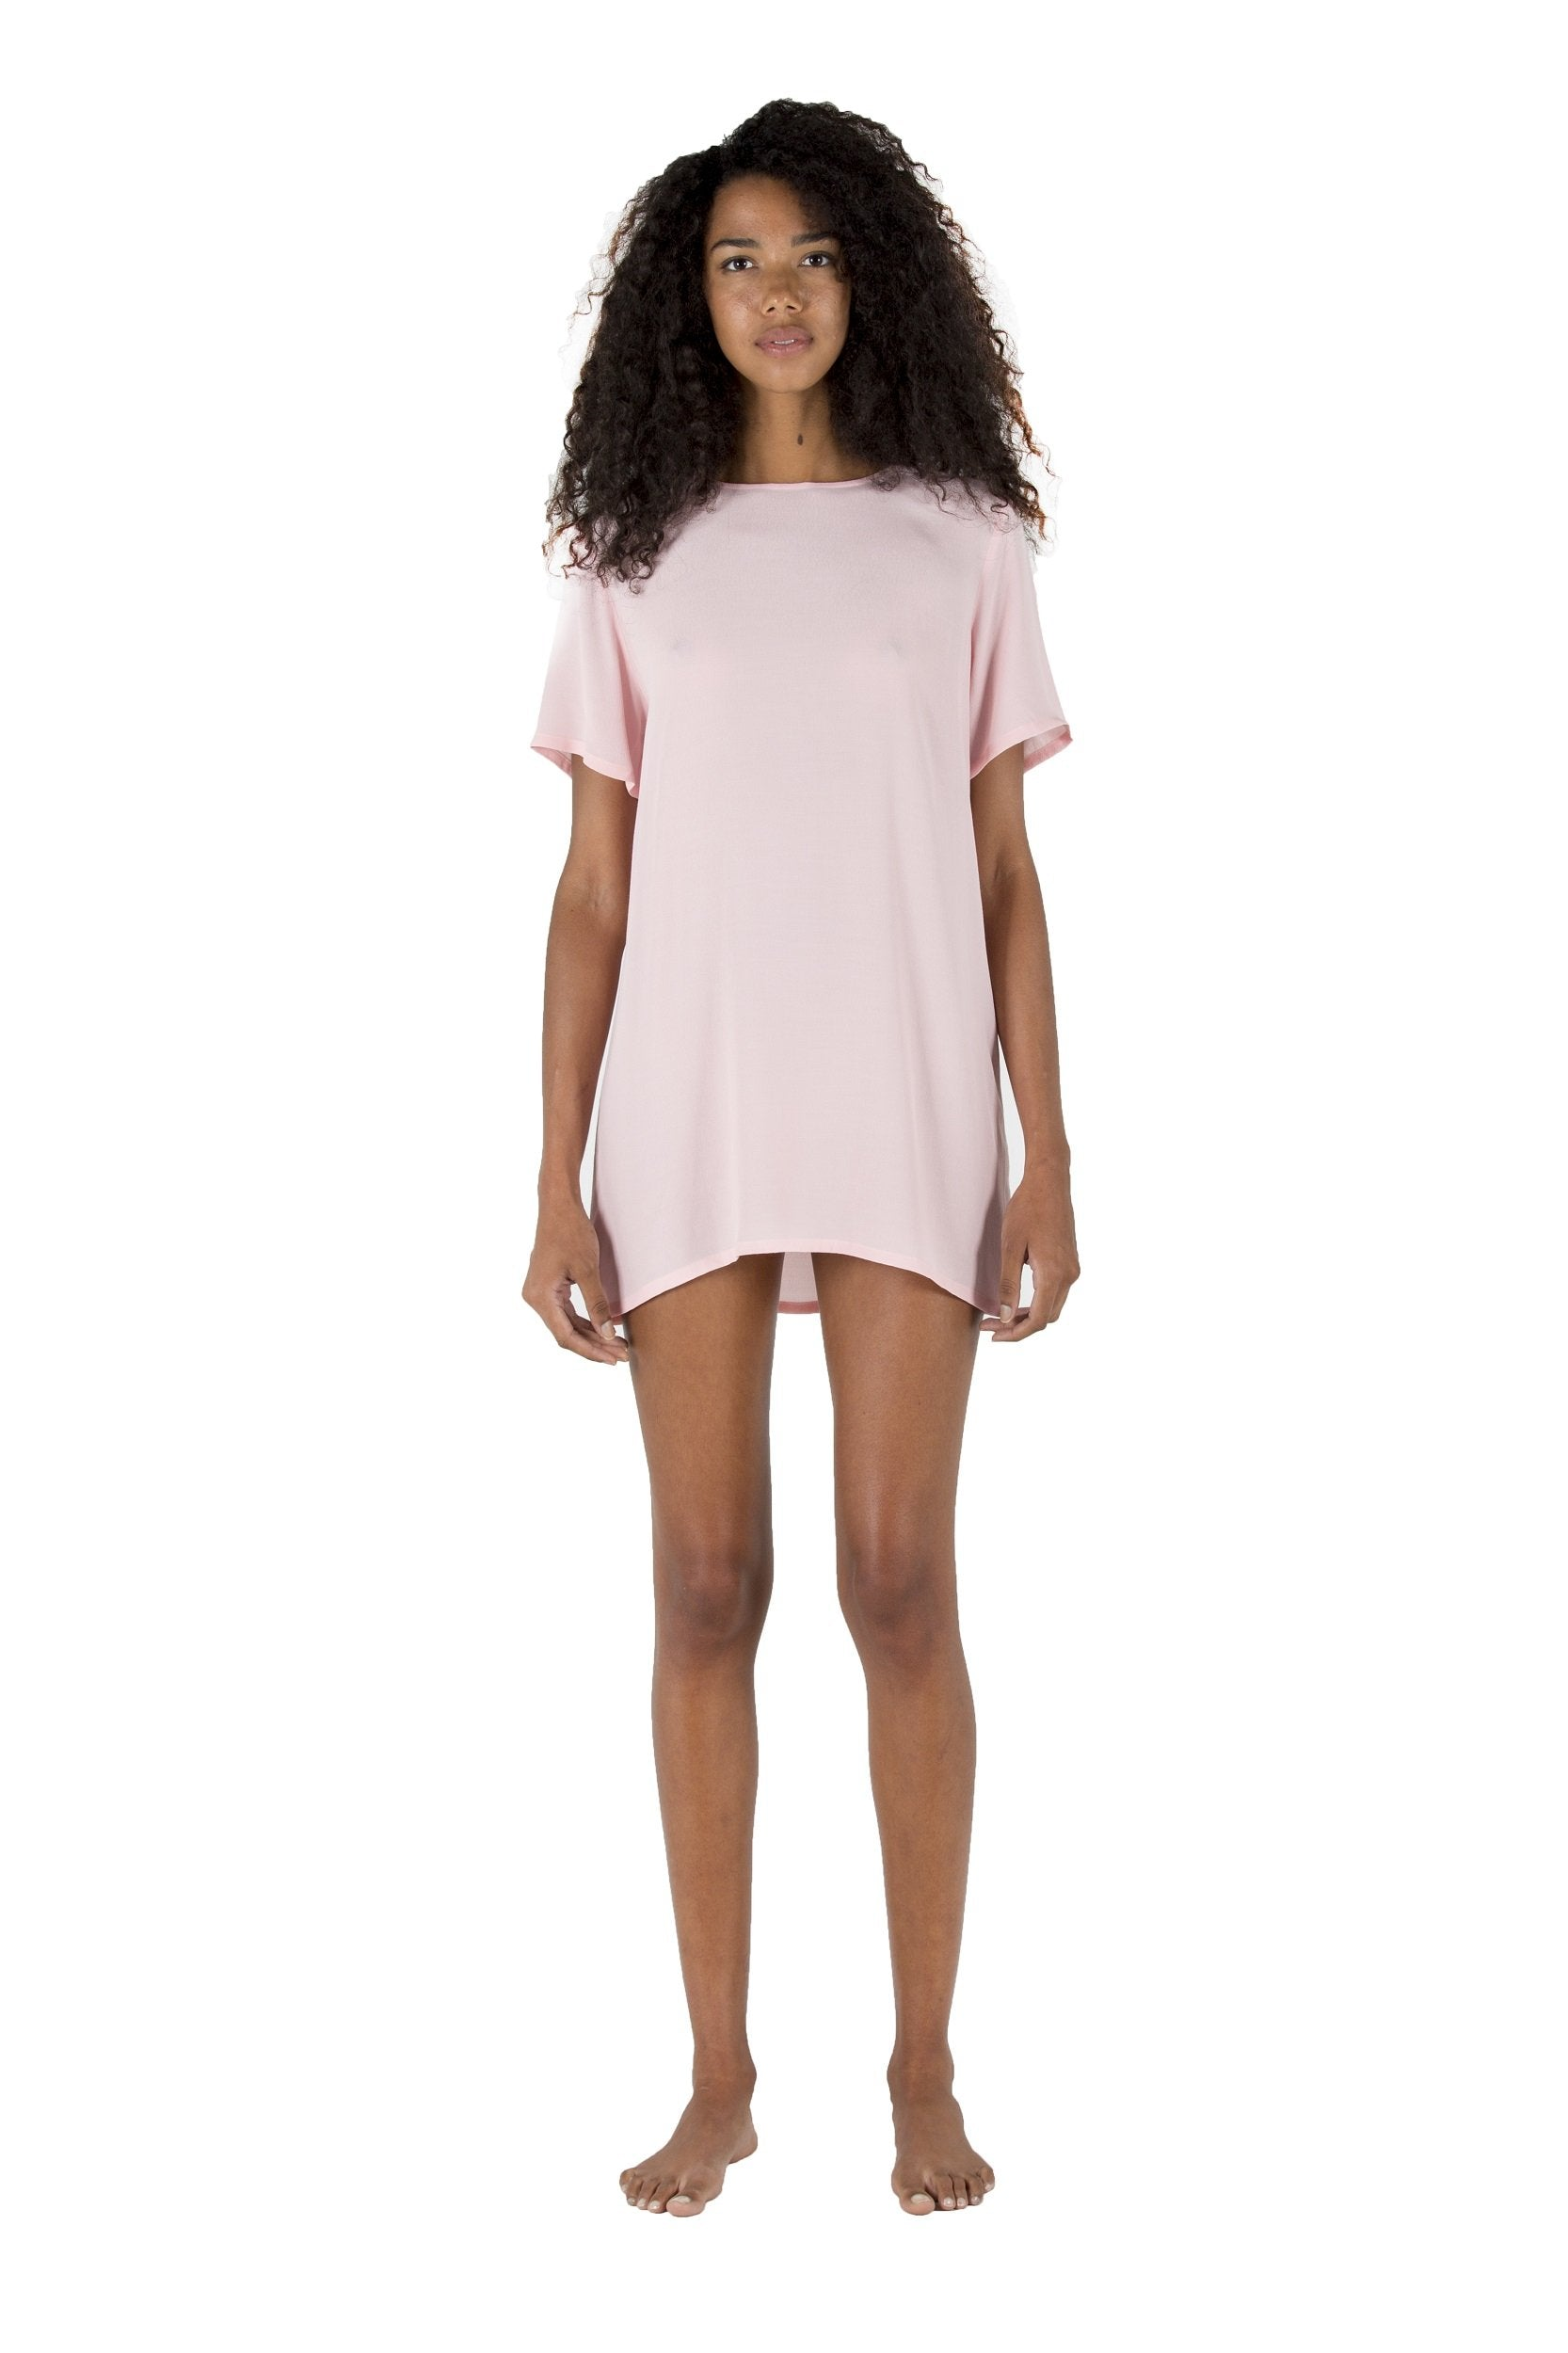 Short Sleeve Baby Doll Bea Pink